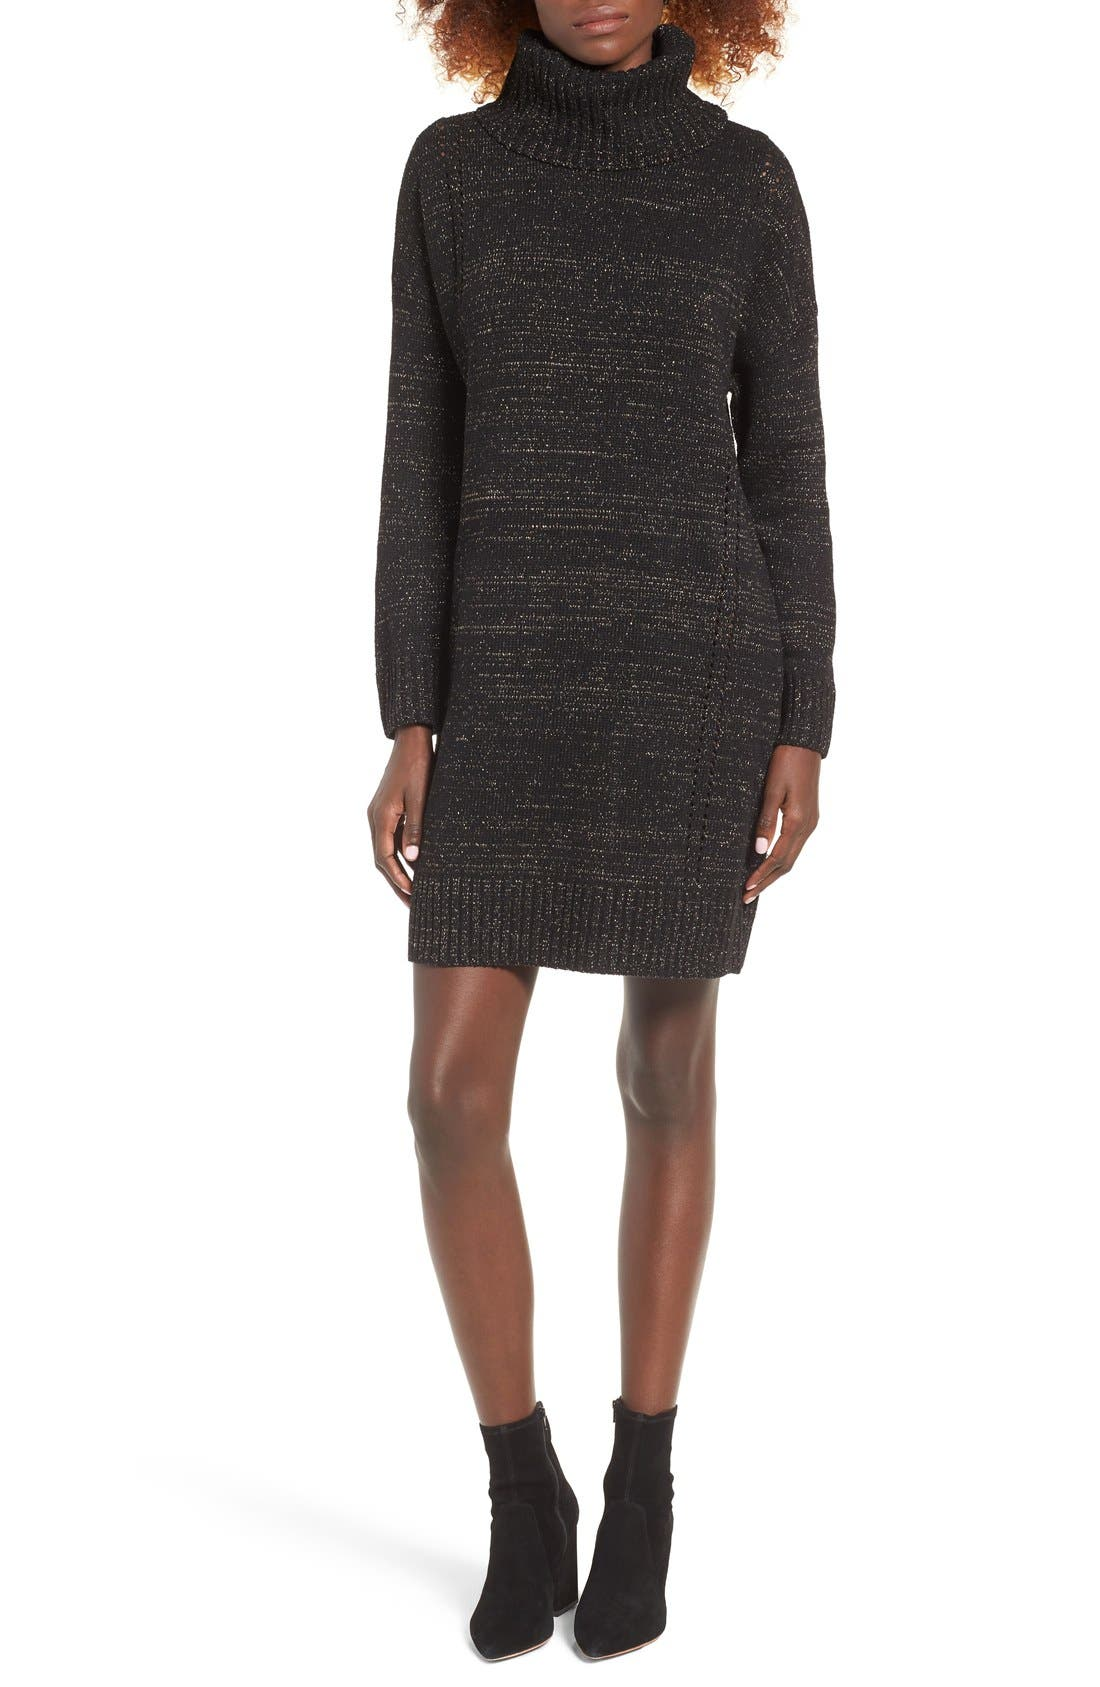 Alternate Image 1 Selected - MOON RIVER Turtleneck Sweater Dress